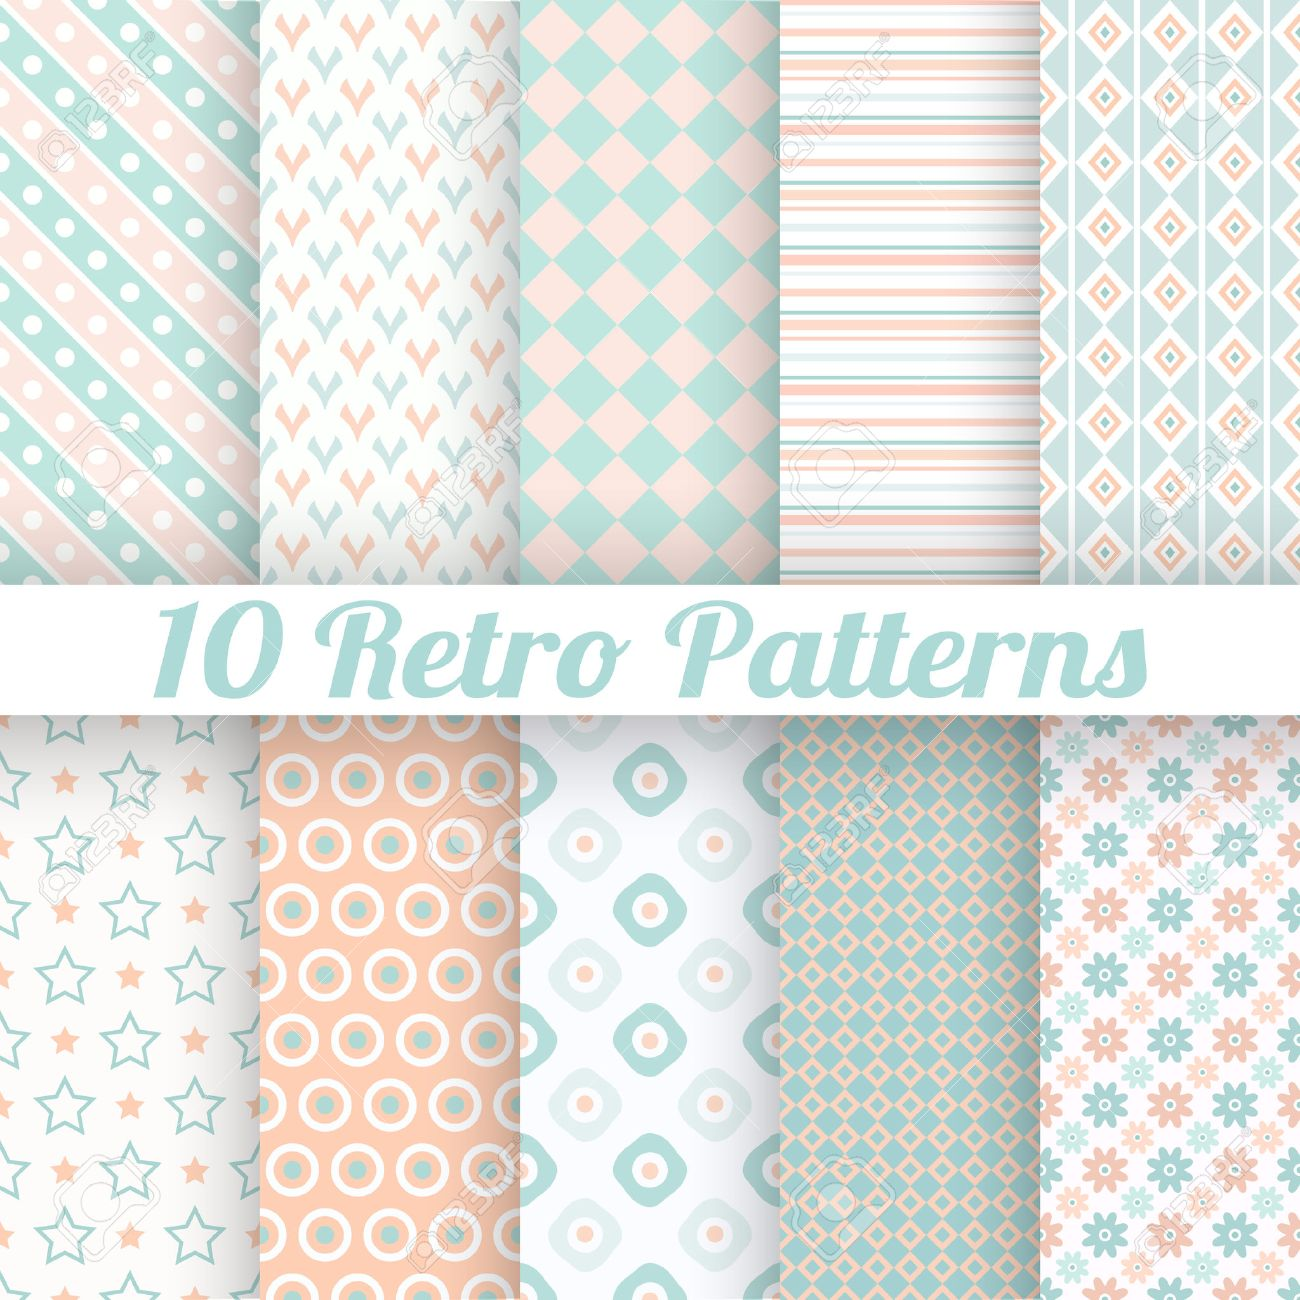 10 Pastel retro different vector seamless patterns (tiling). Endless texture can be used for wallpaper, web page background, surface textures. Set of geometric ornaments. Orange, blue and white colors - 28458780